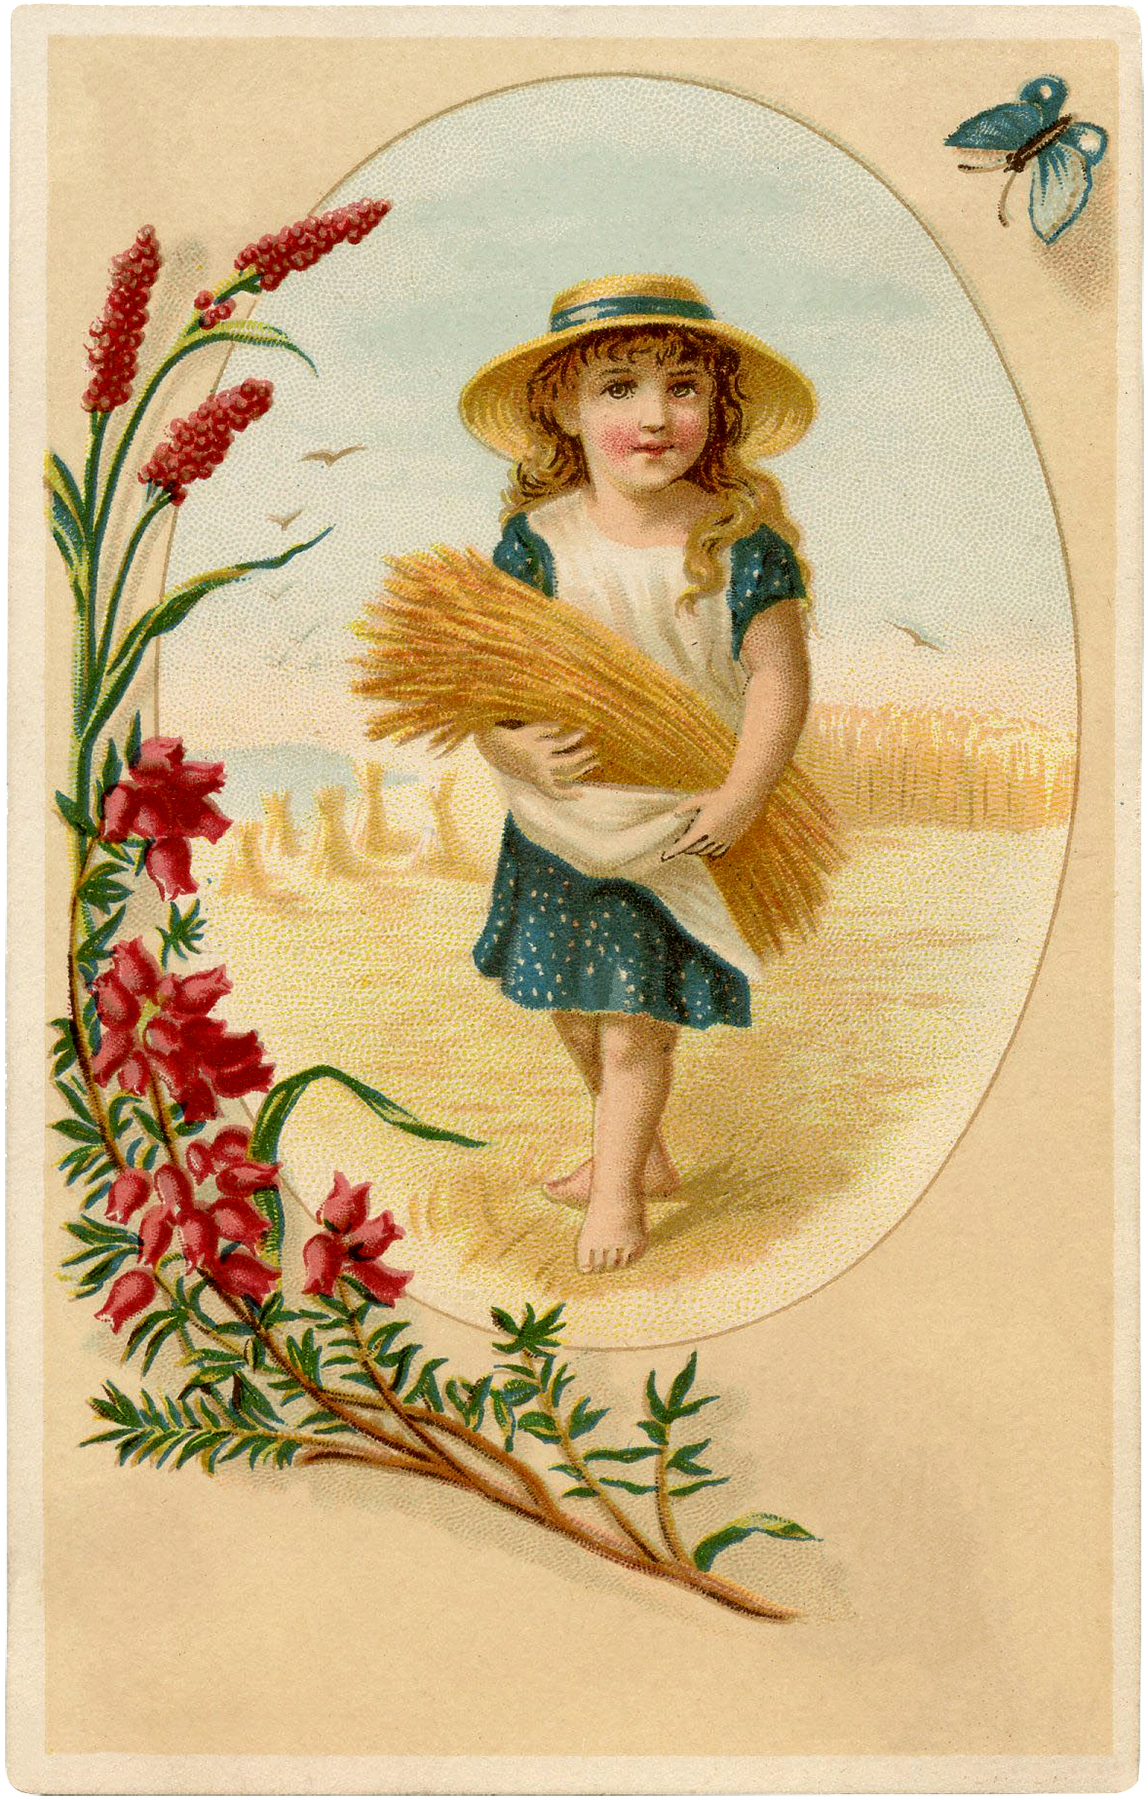 Cute Vintage Wheat Harvest Girl! - The Graphics Fairy